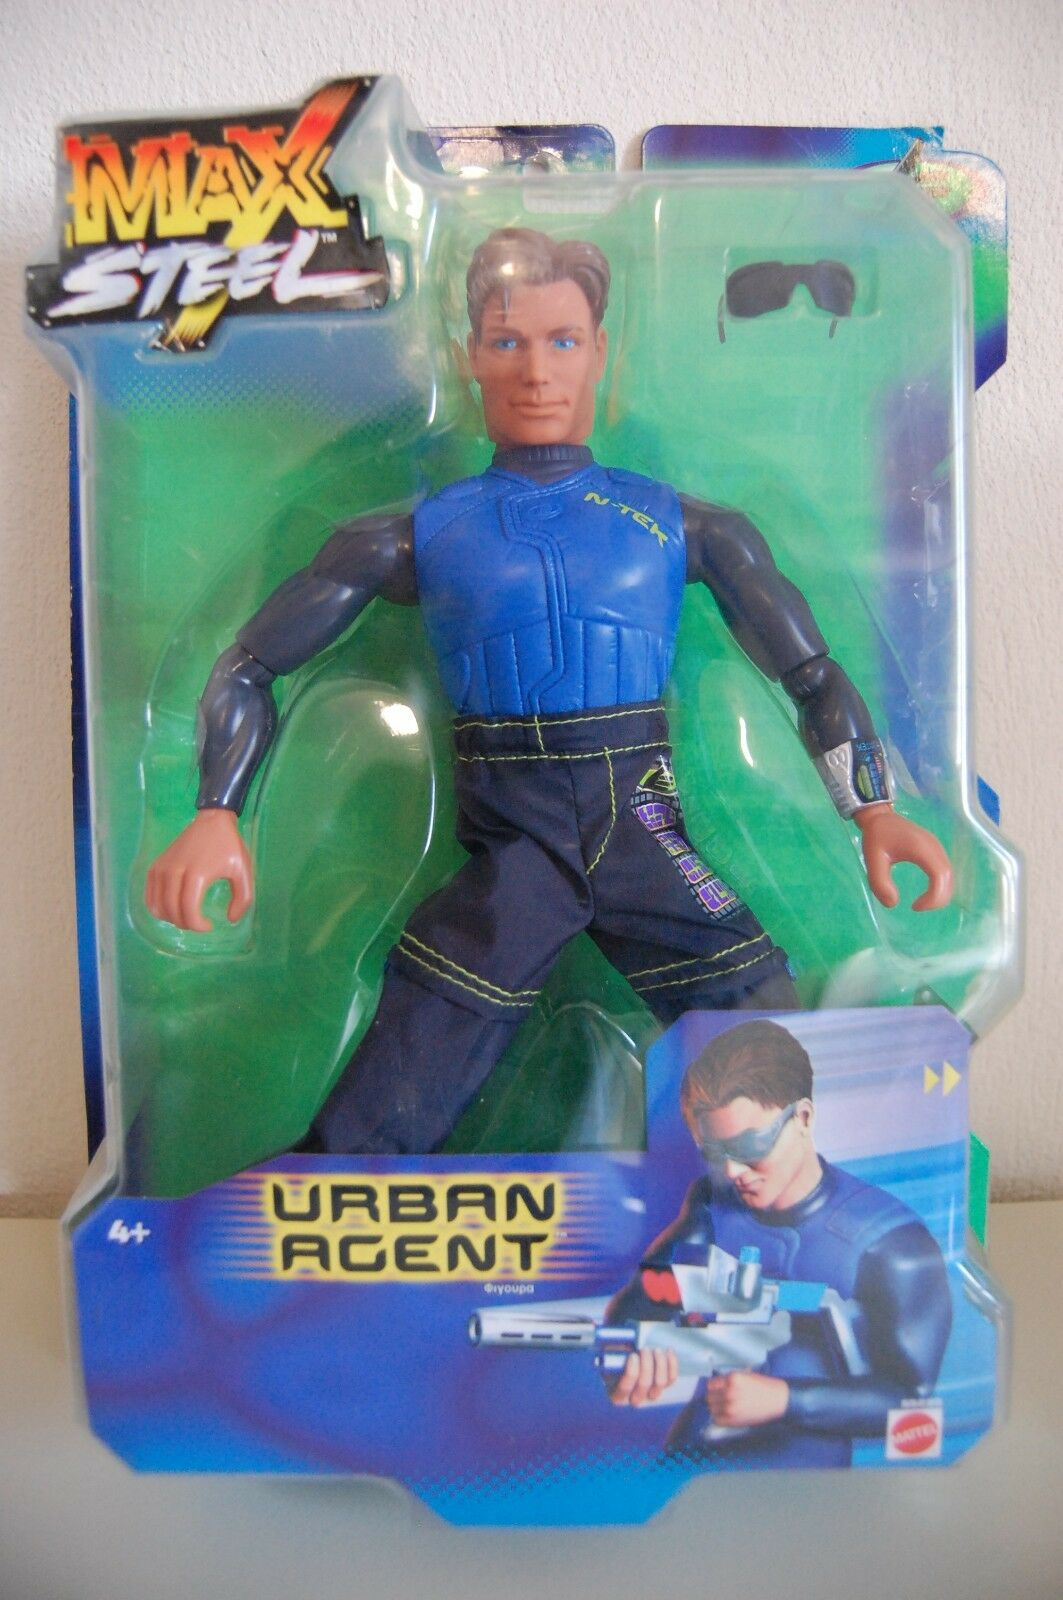 MAX STEEL FIGURE URBAN AGENT - 55295 MATTEL 2001 - NEW IN BOX